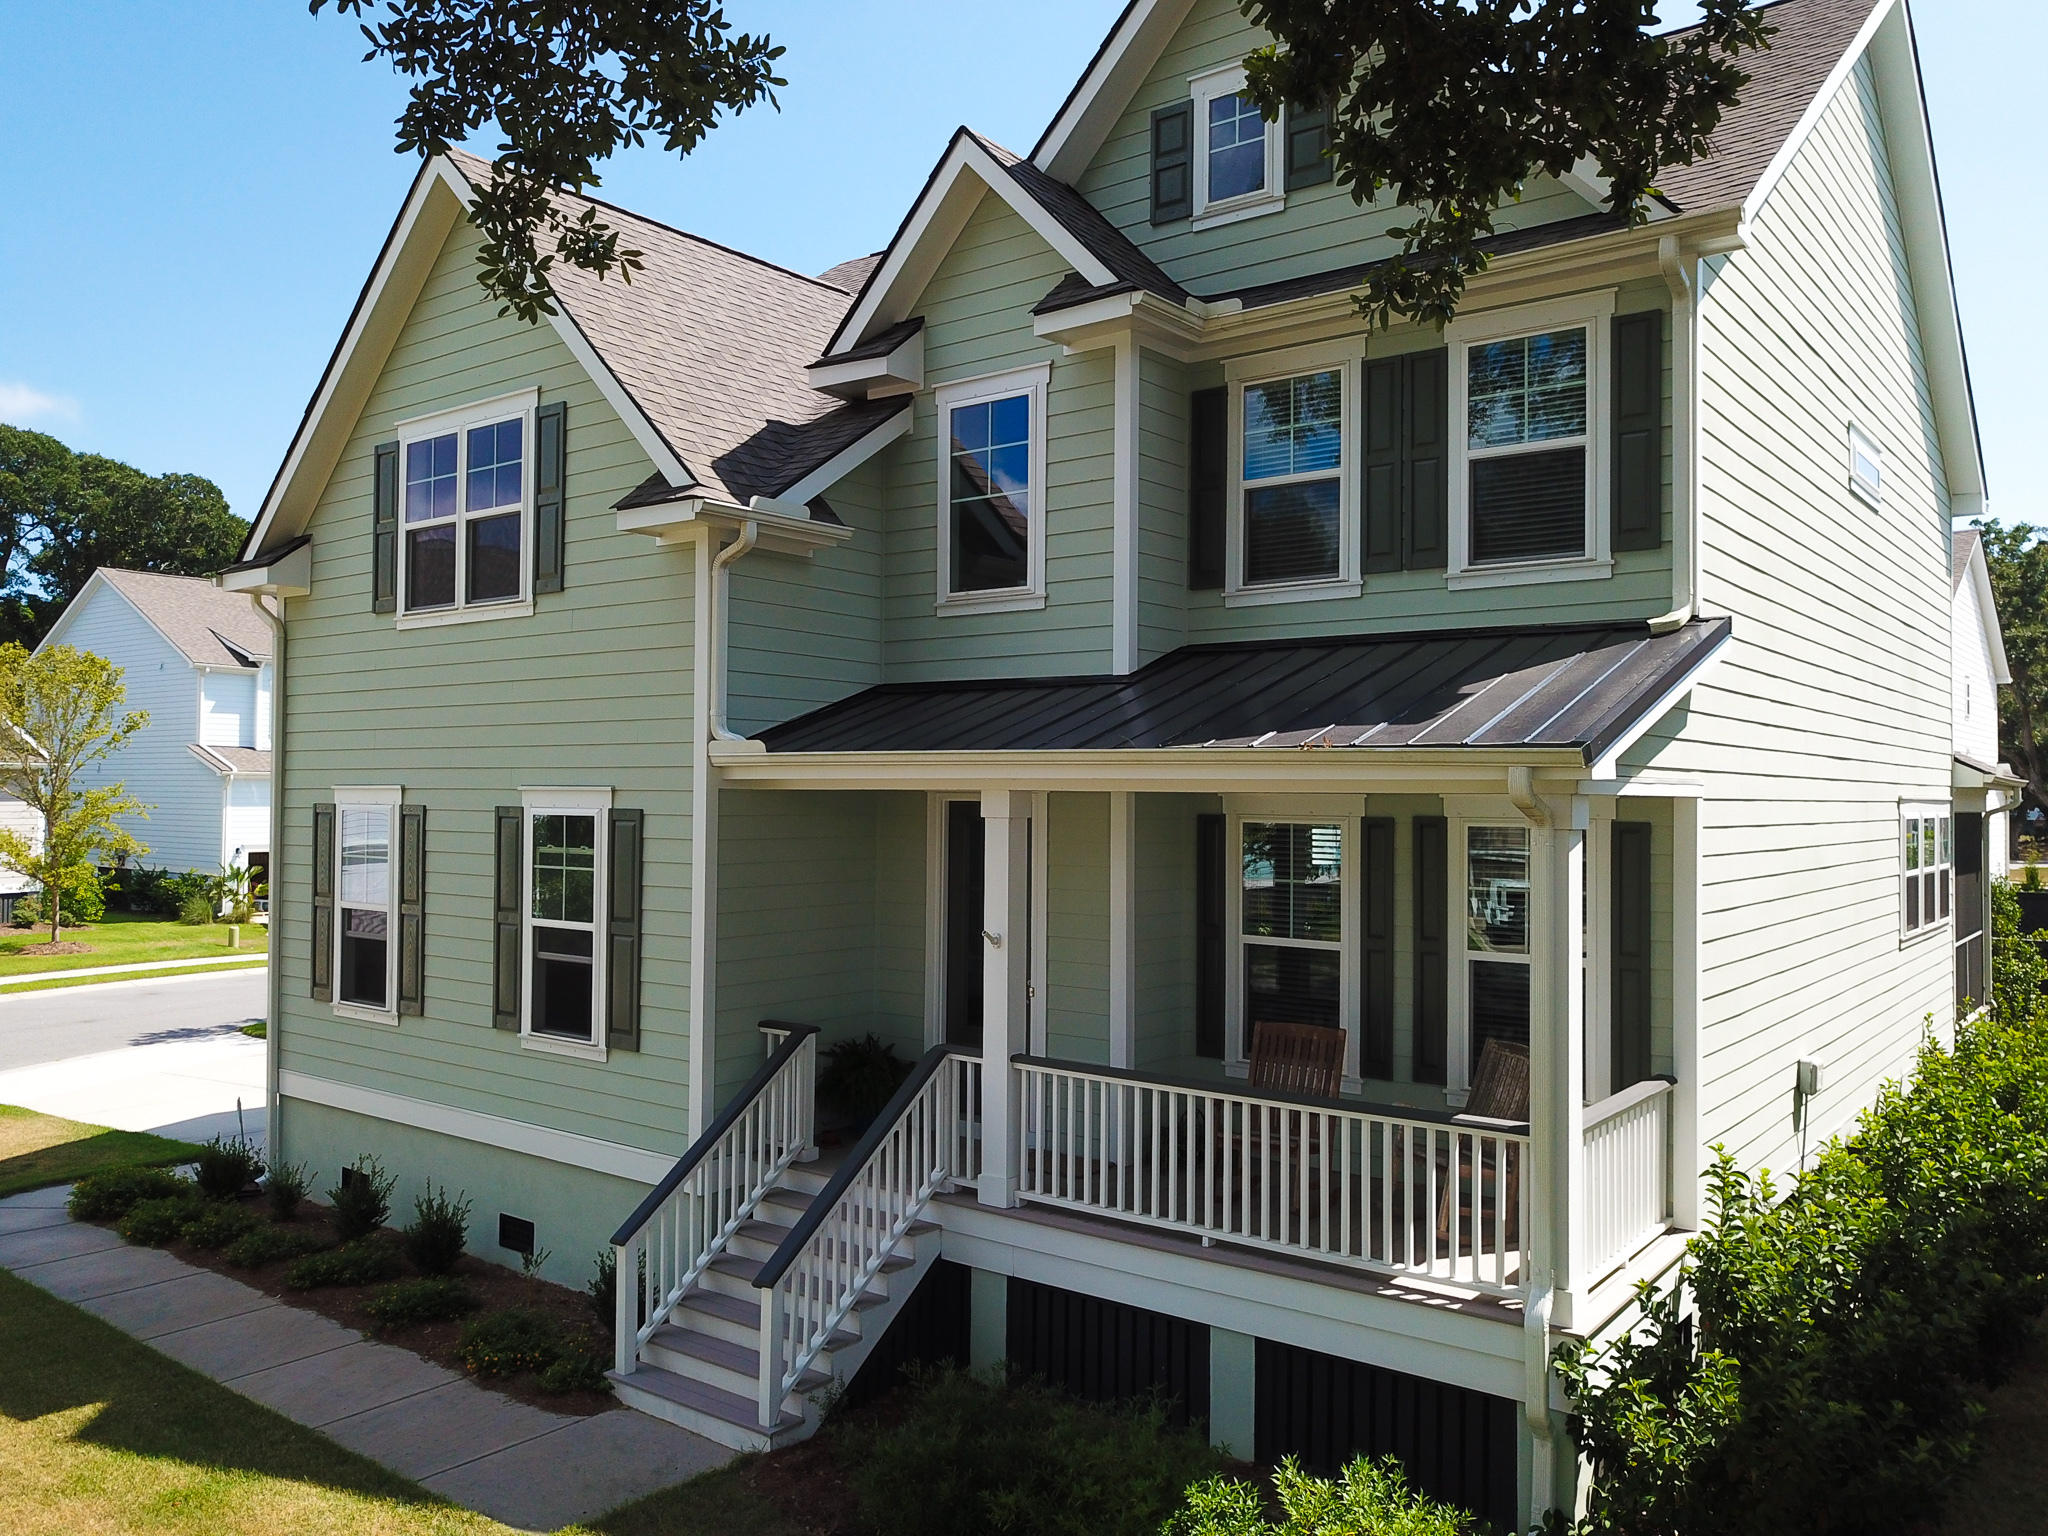 Oyster Point Homes For Sale - 2292 Skyler, Mount Pleasant, SC - 24